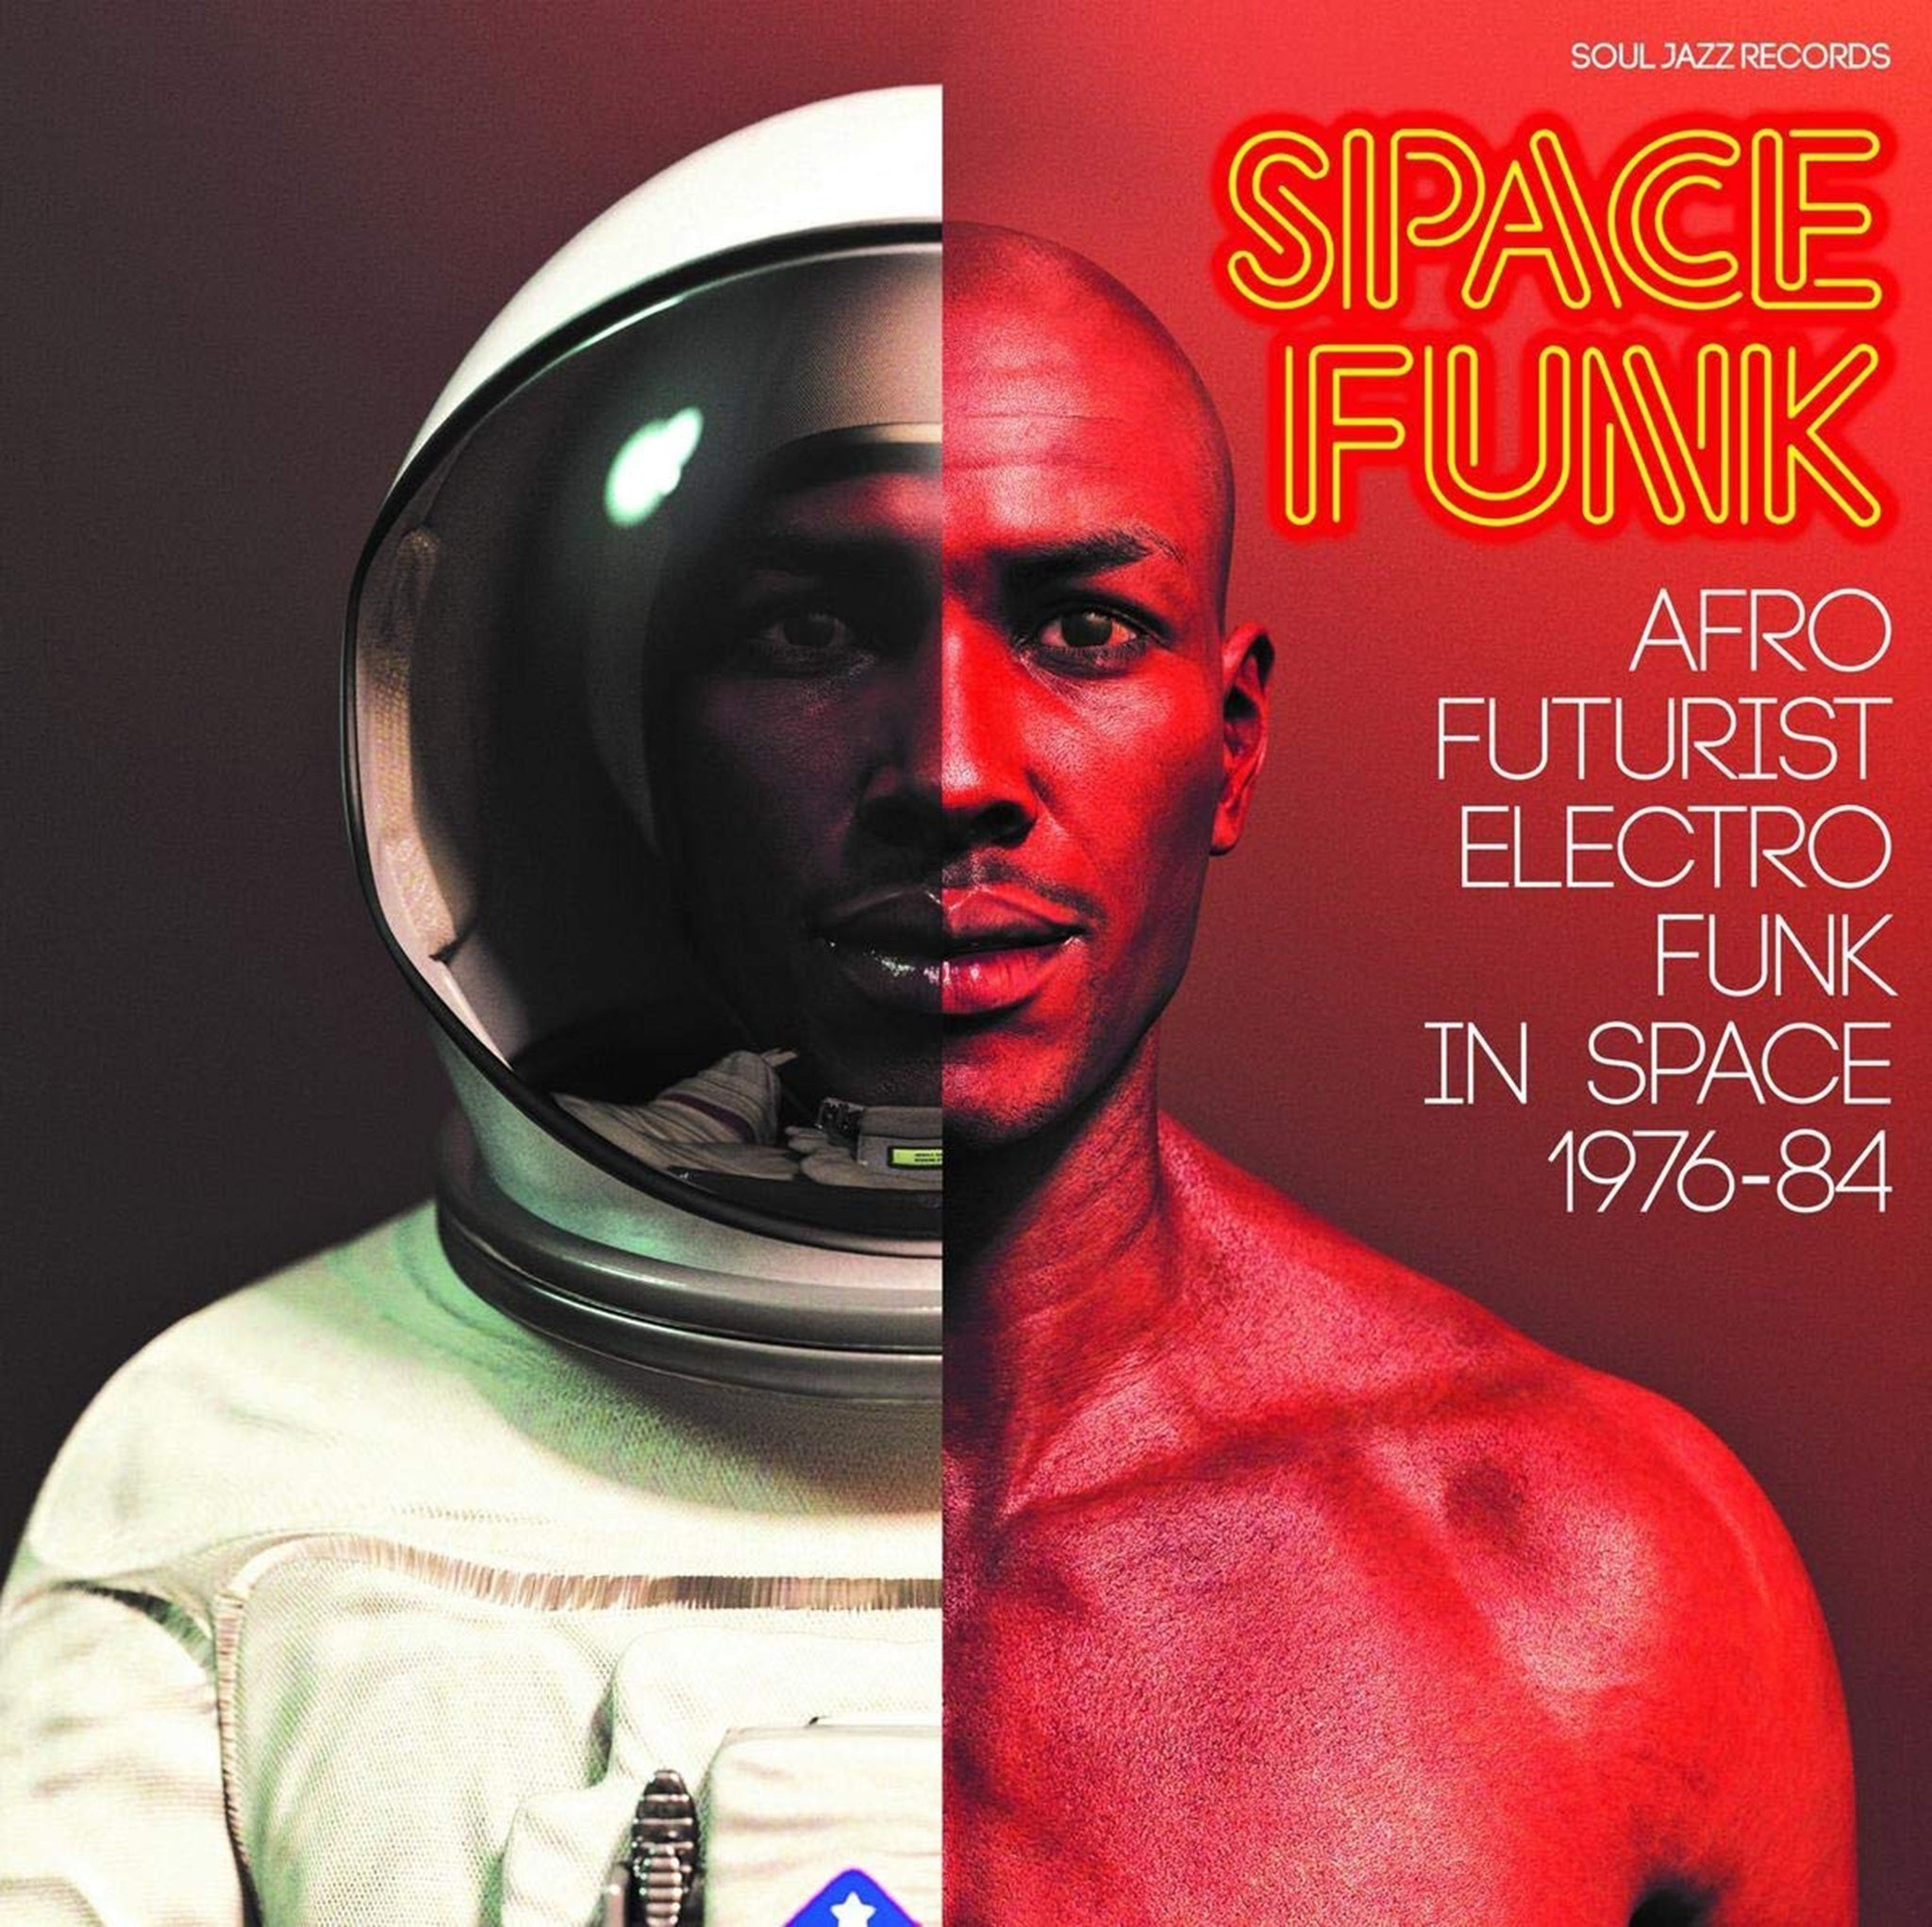 Soul Jazz Records Presents: Space Funk - Afro Futurist Electro Funk In Space 1976 - 84